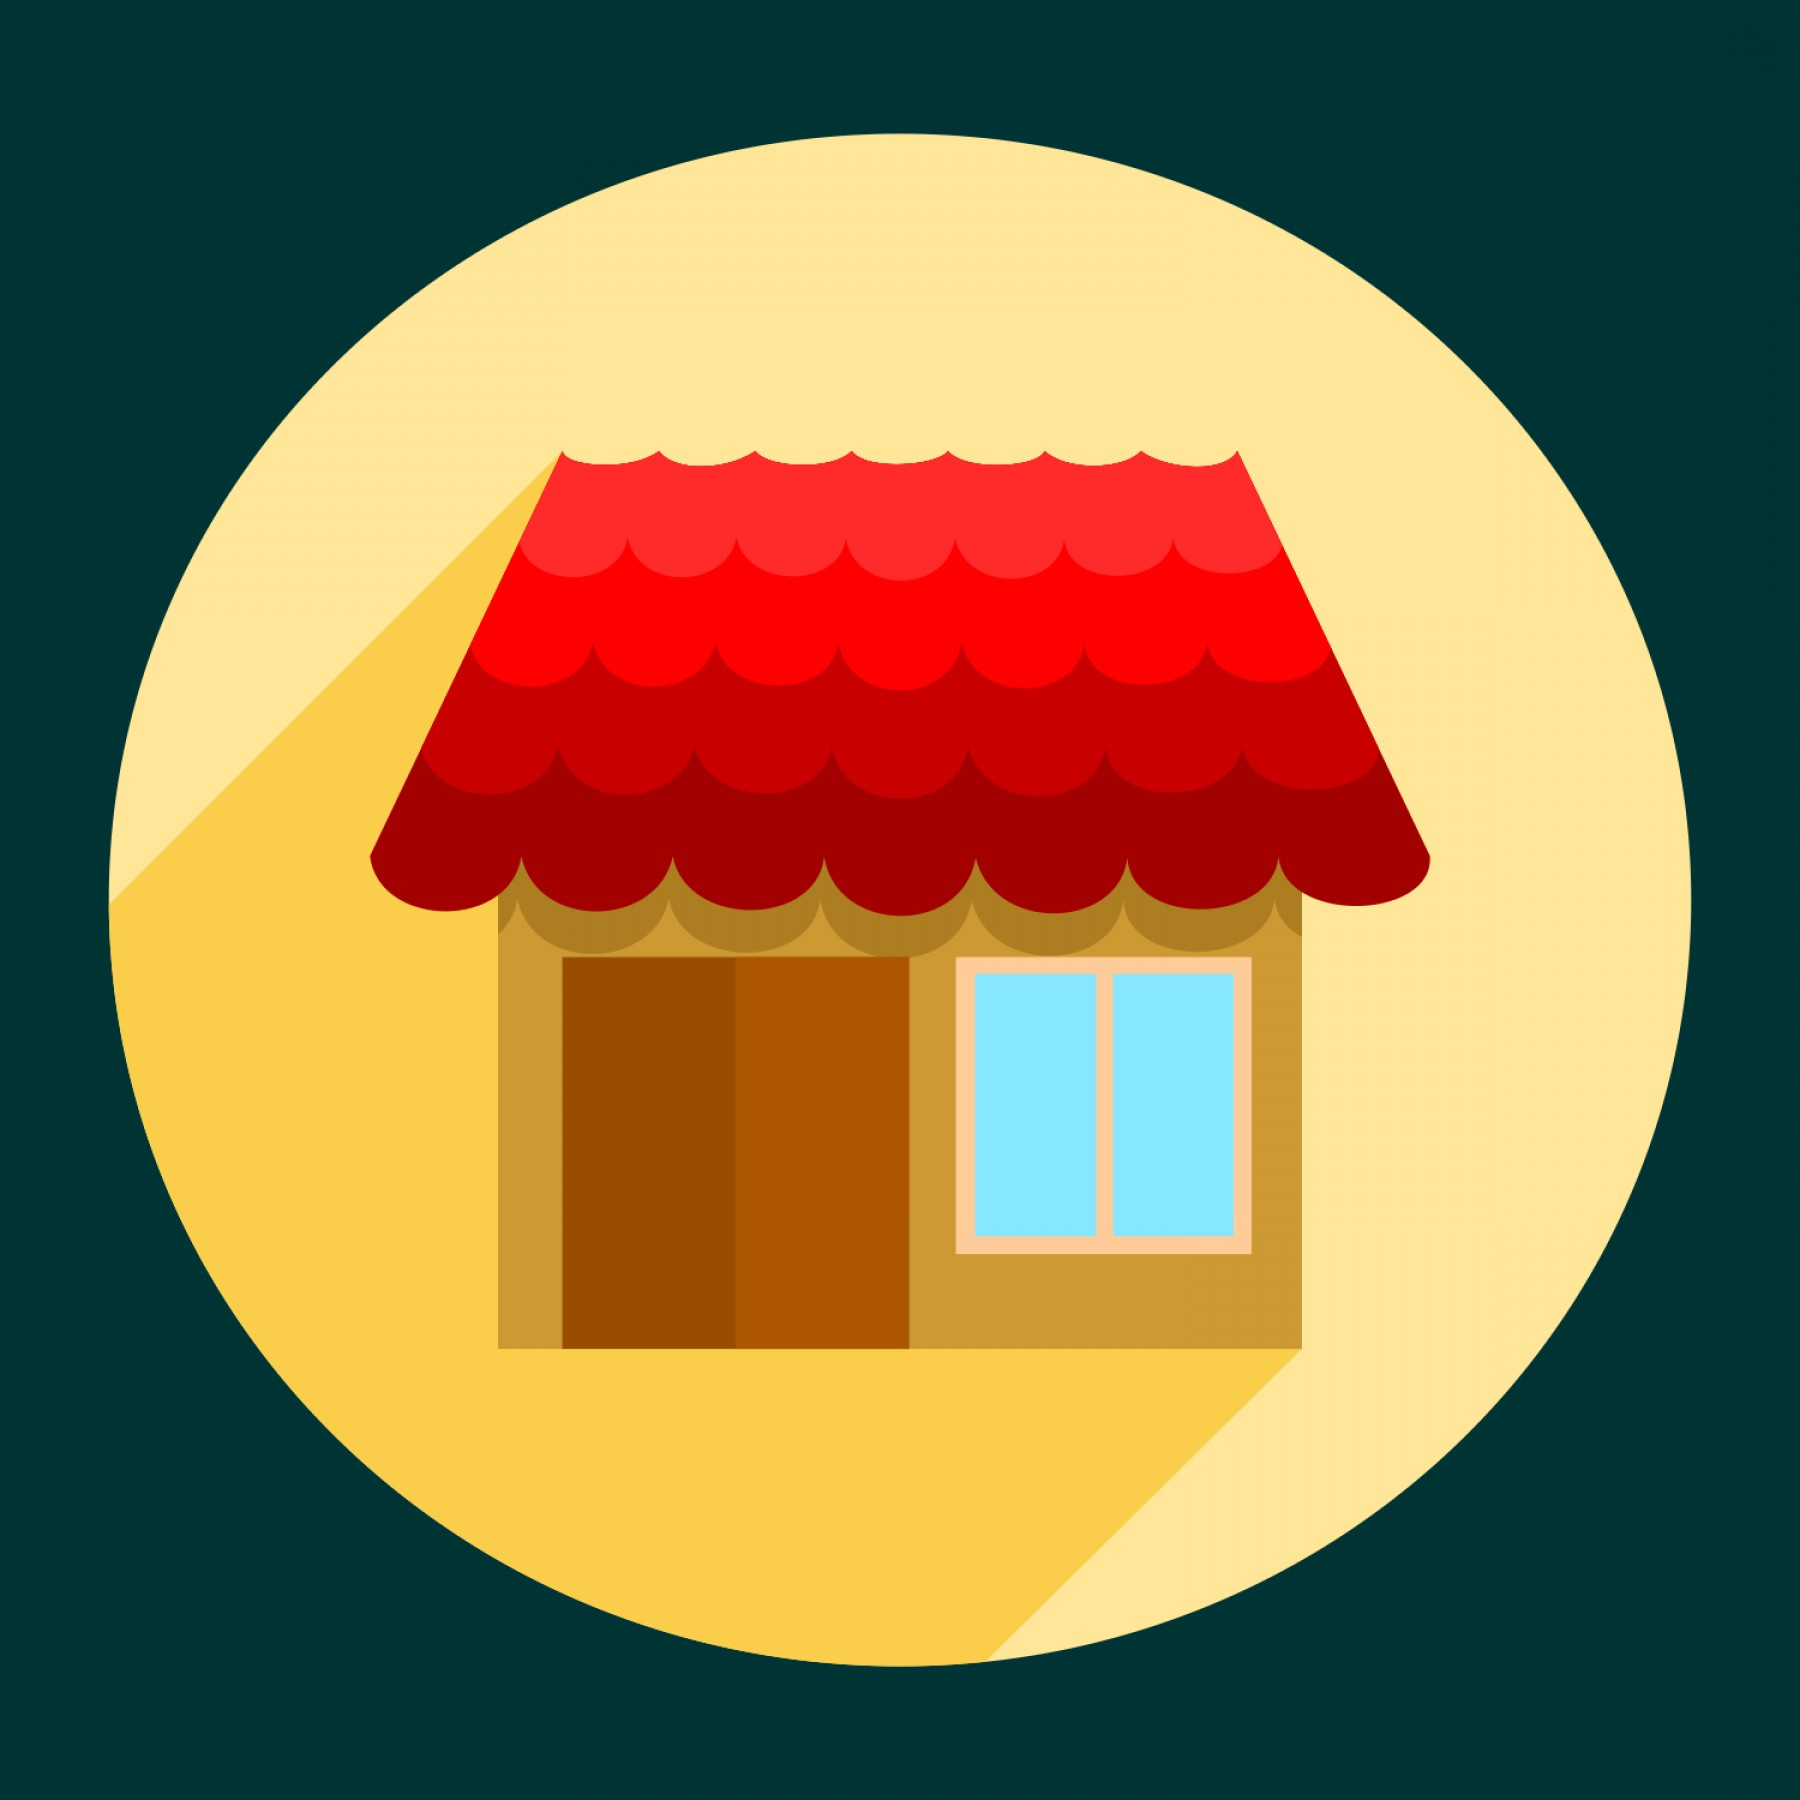 Shed PNG Vector: Home Icon Vector Png Con Home Icons Svg Clip Arts Download Clip Arts Free Png Backgrounds E Home Icons Vector Xpx Home Icon Vector Png